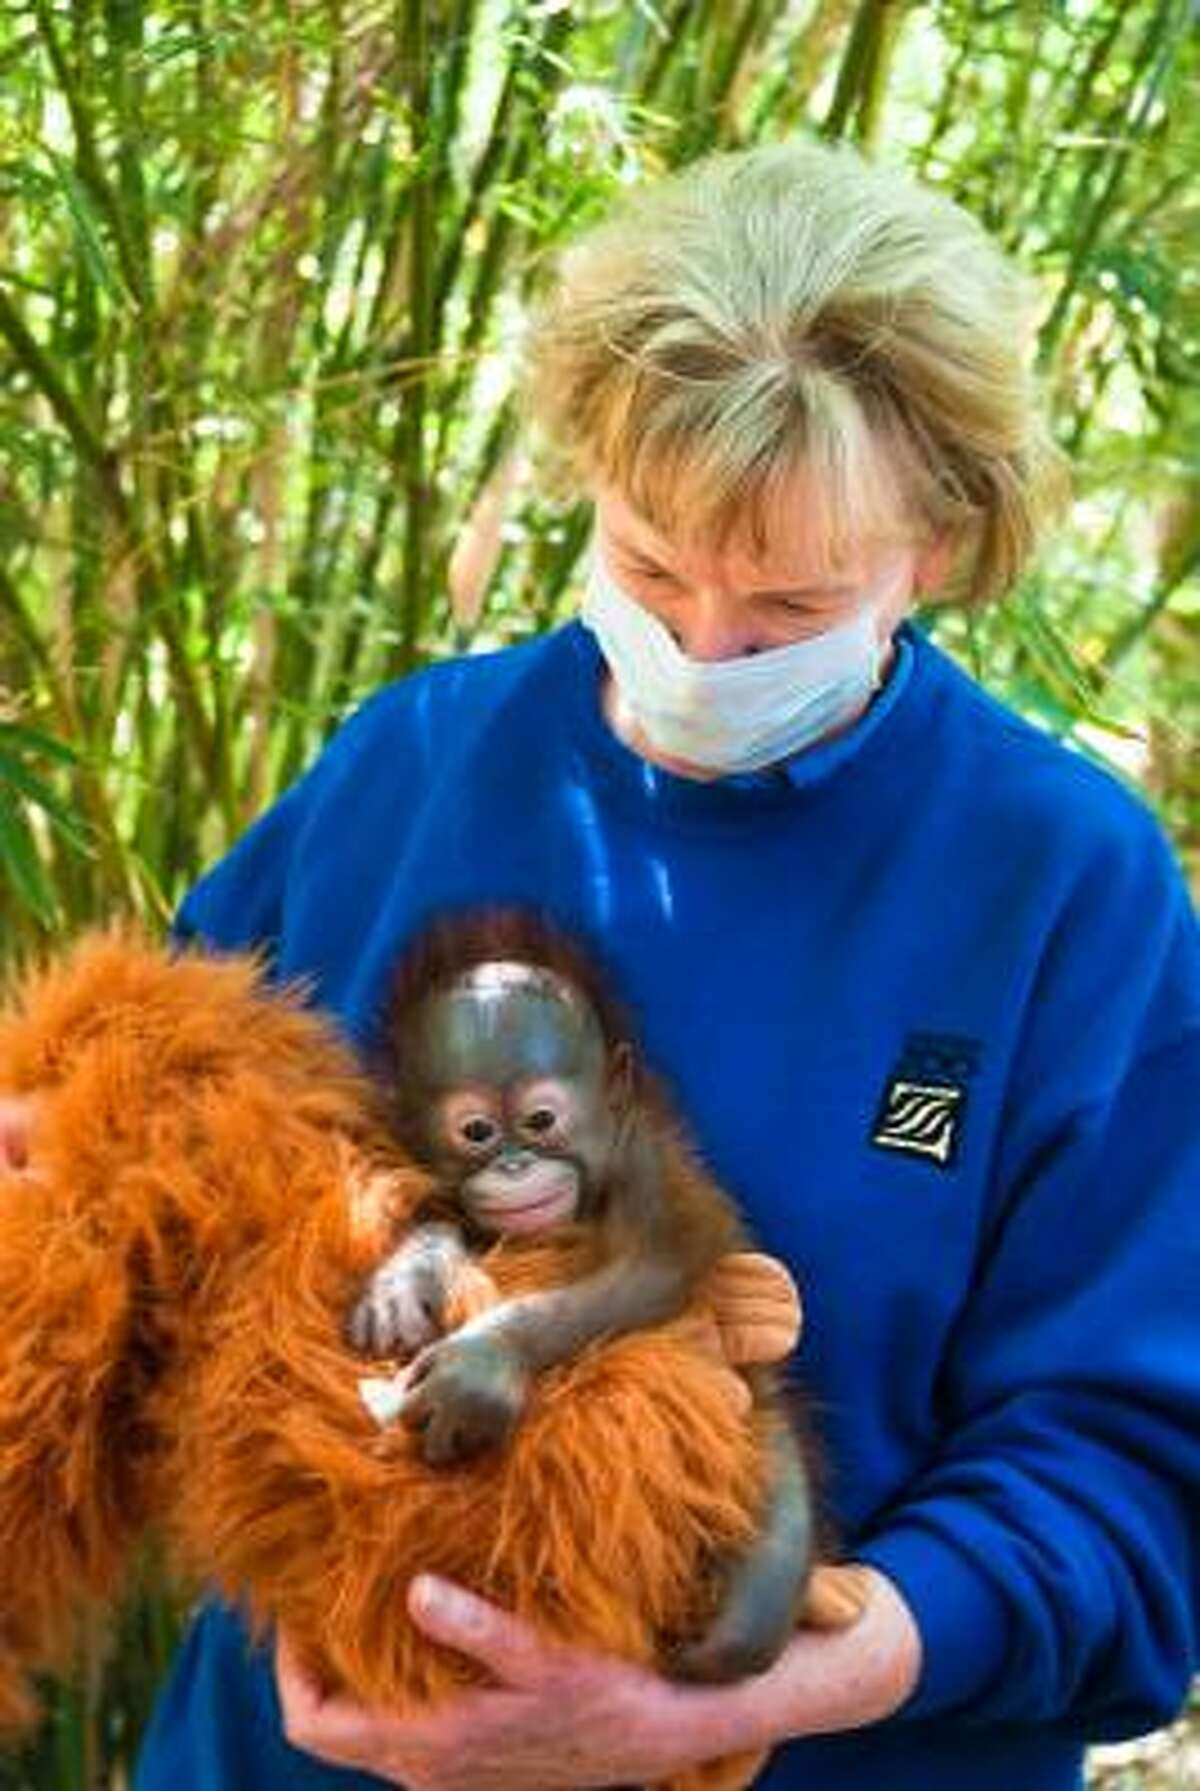 The newest arrival at the Houston Zoo, a baby orangutan born March 2 to mom Kelly is seen in the arms of one of her care givers, Janet at the Zoo's Wortham World of Primates. The baby is being hand reared by a team of trained and experienced care givers.